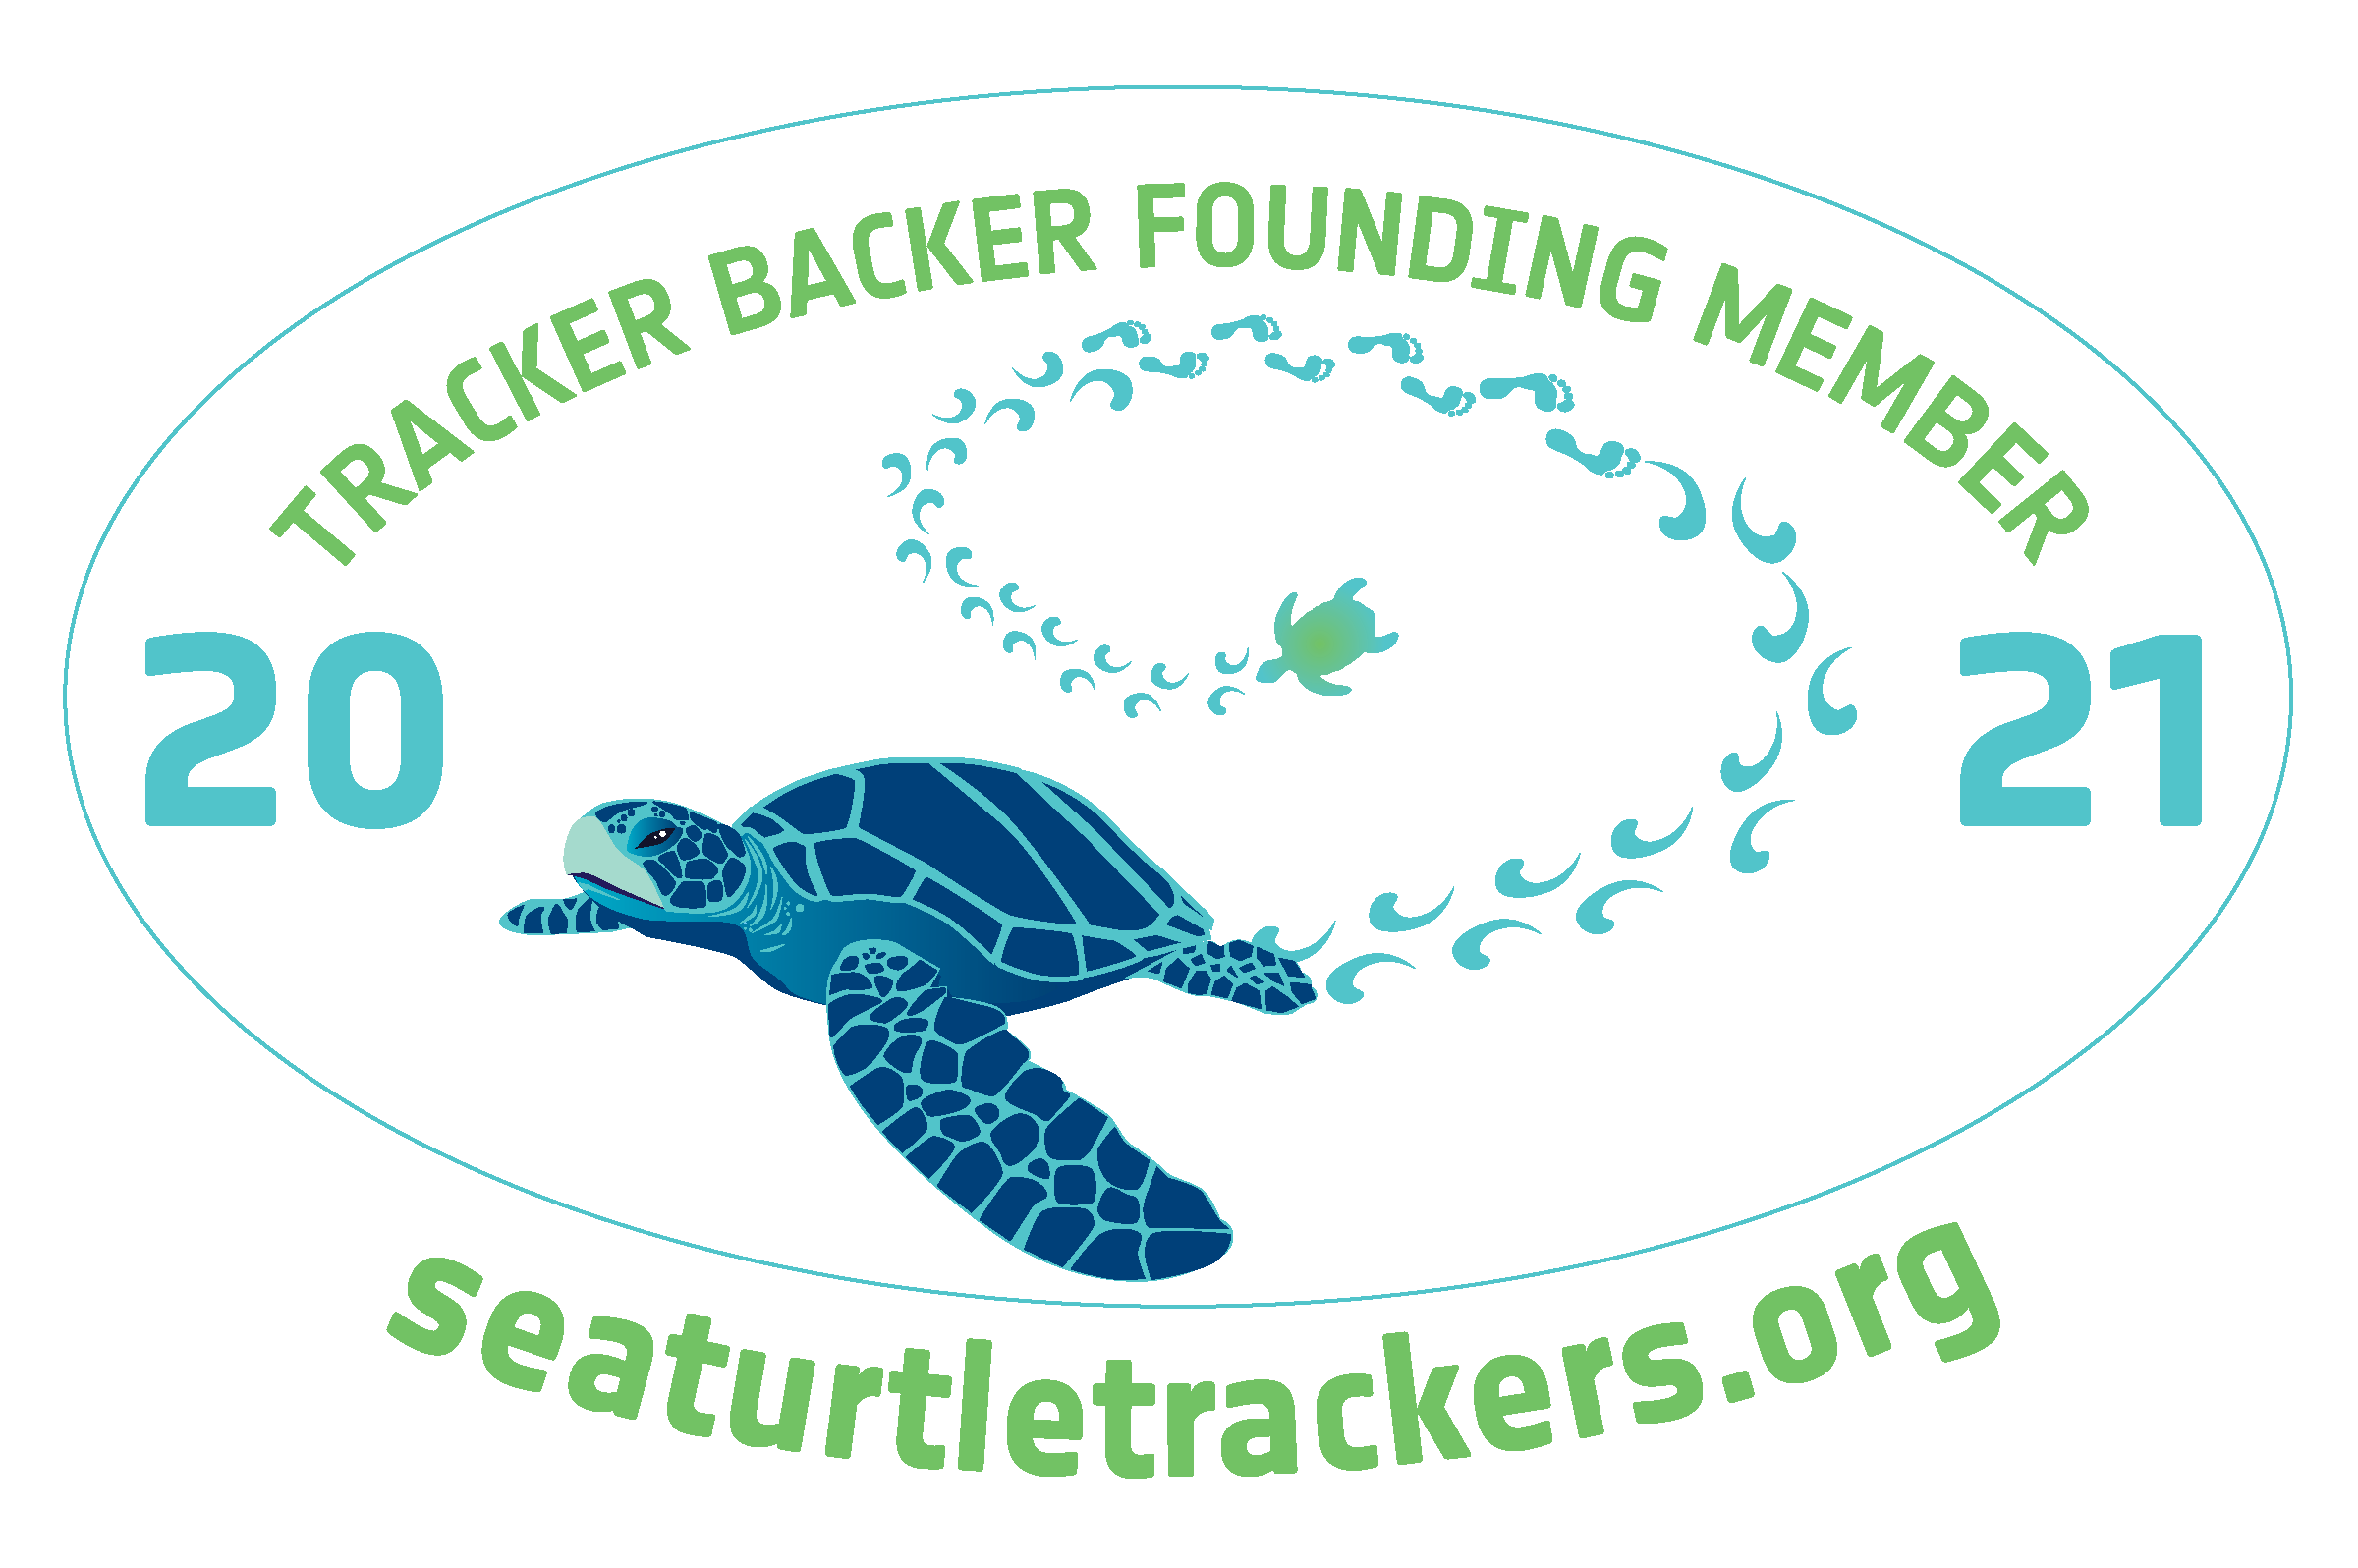 TrackerBacker Window Cling 2021-01